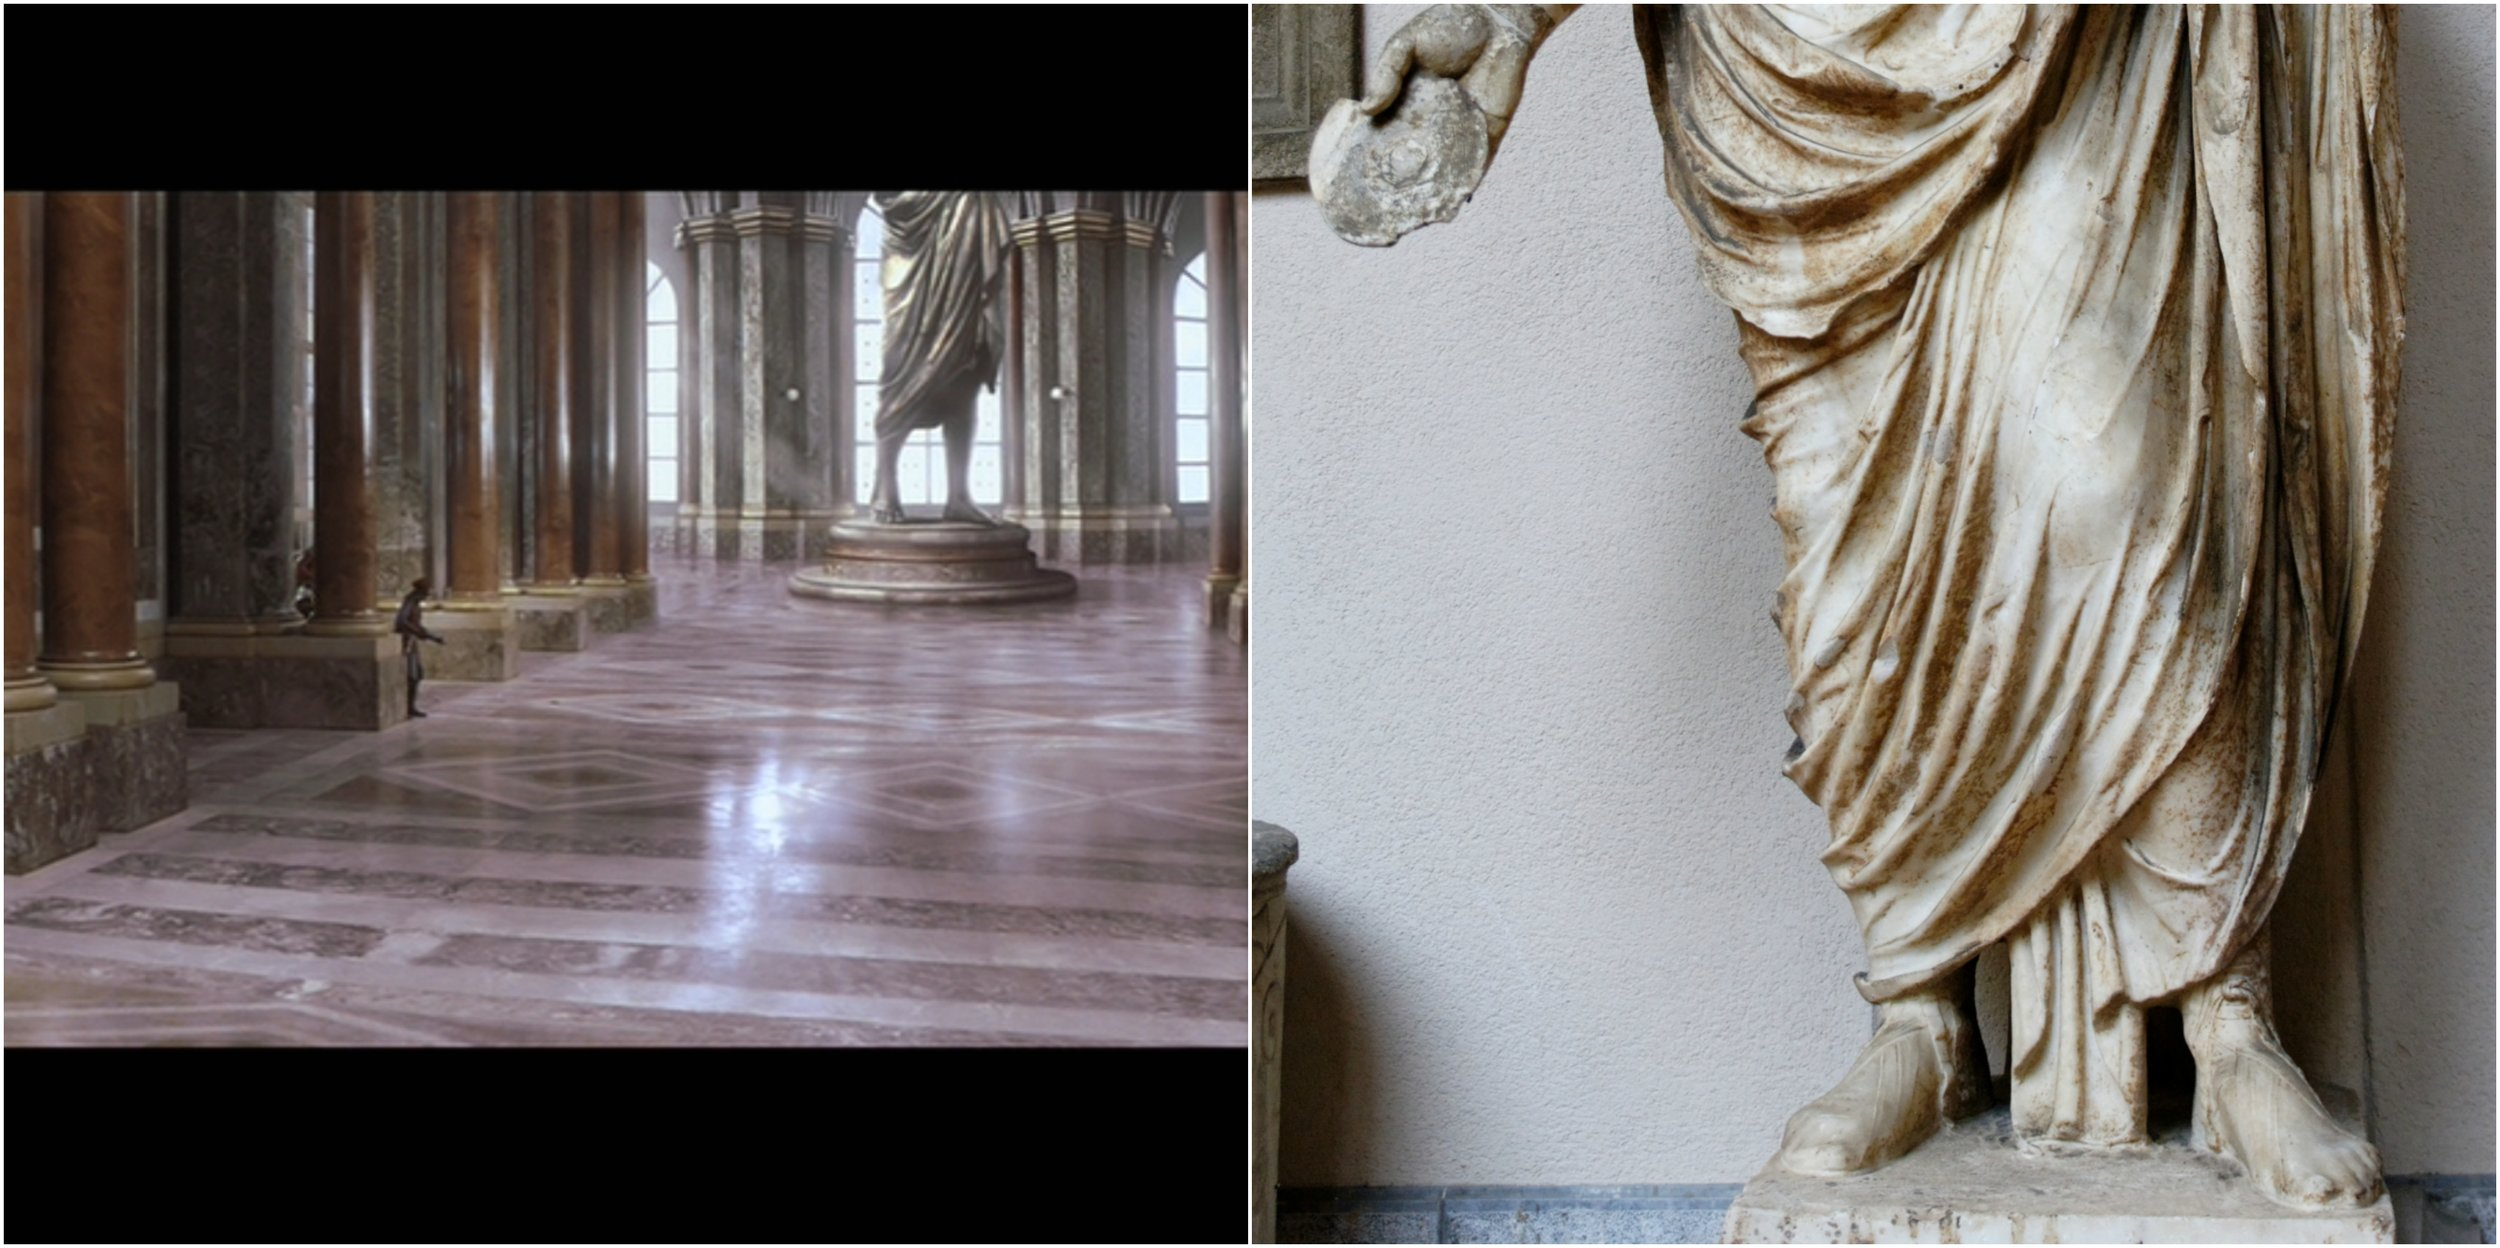 Figure 4: Columns line the walls of the Naboo palace (left) , and, visible in the same shot, the bottom half of a statue wearing a toga, similar to a first-century A.D. statue of a Roman man (right). Photo credits: Twentieth Century Fox (DVD) and Wikimedia Commons.